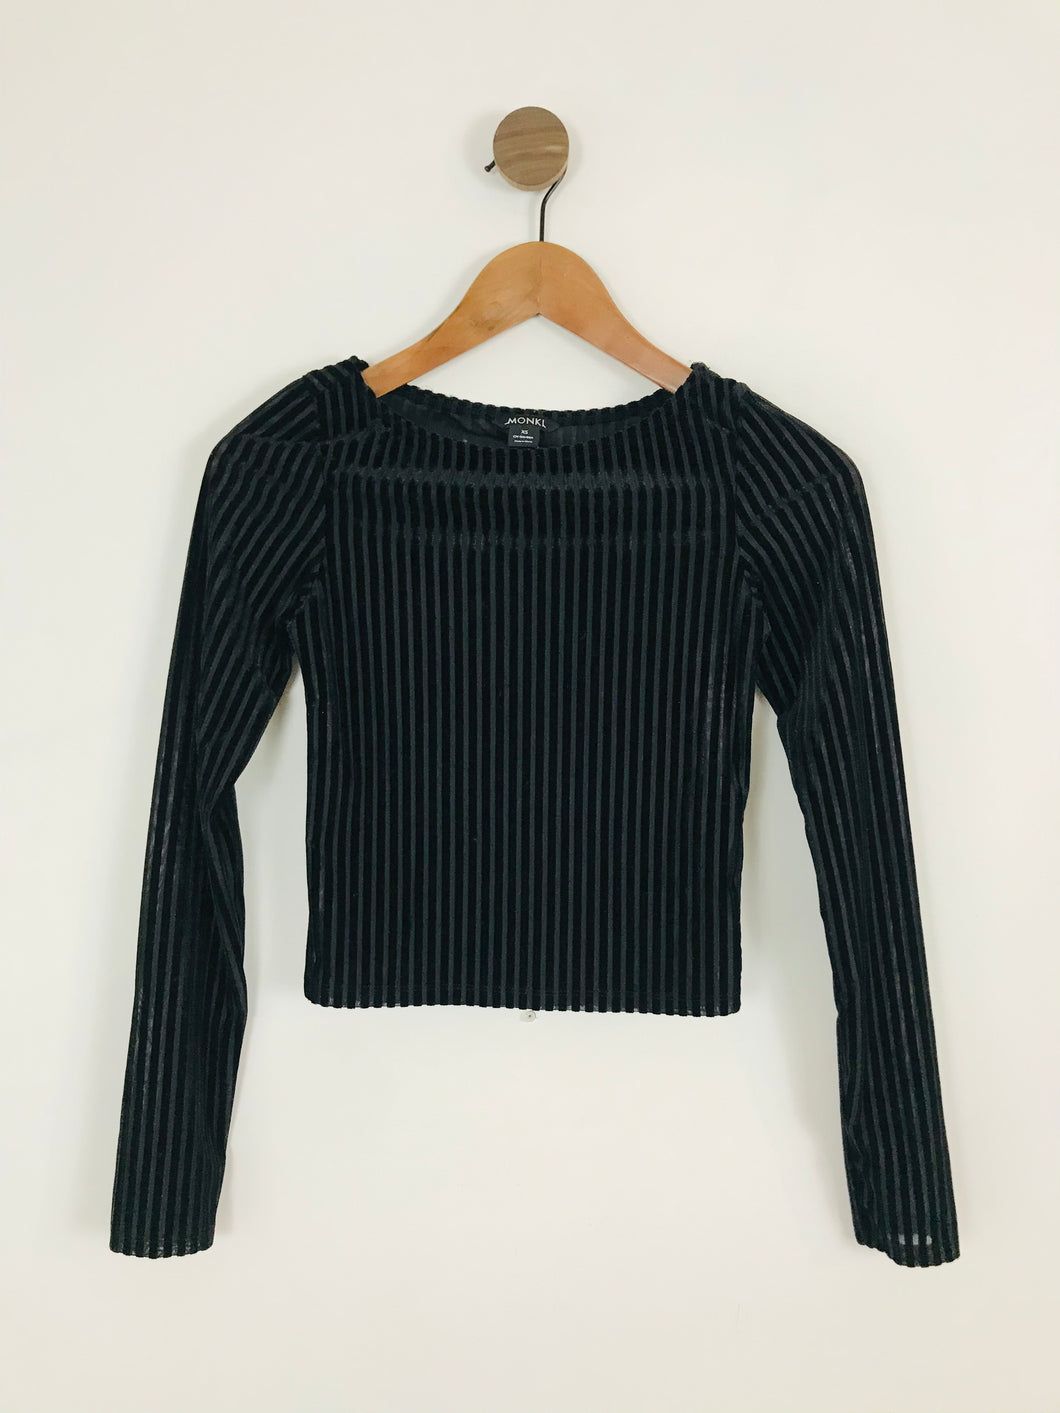 Monki Women's Velvet Devore Stripe Long Sleeve Top | UK6 | Black